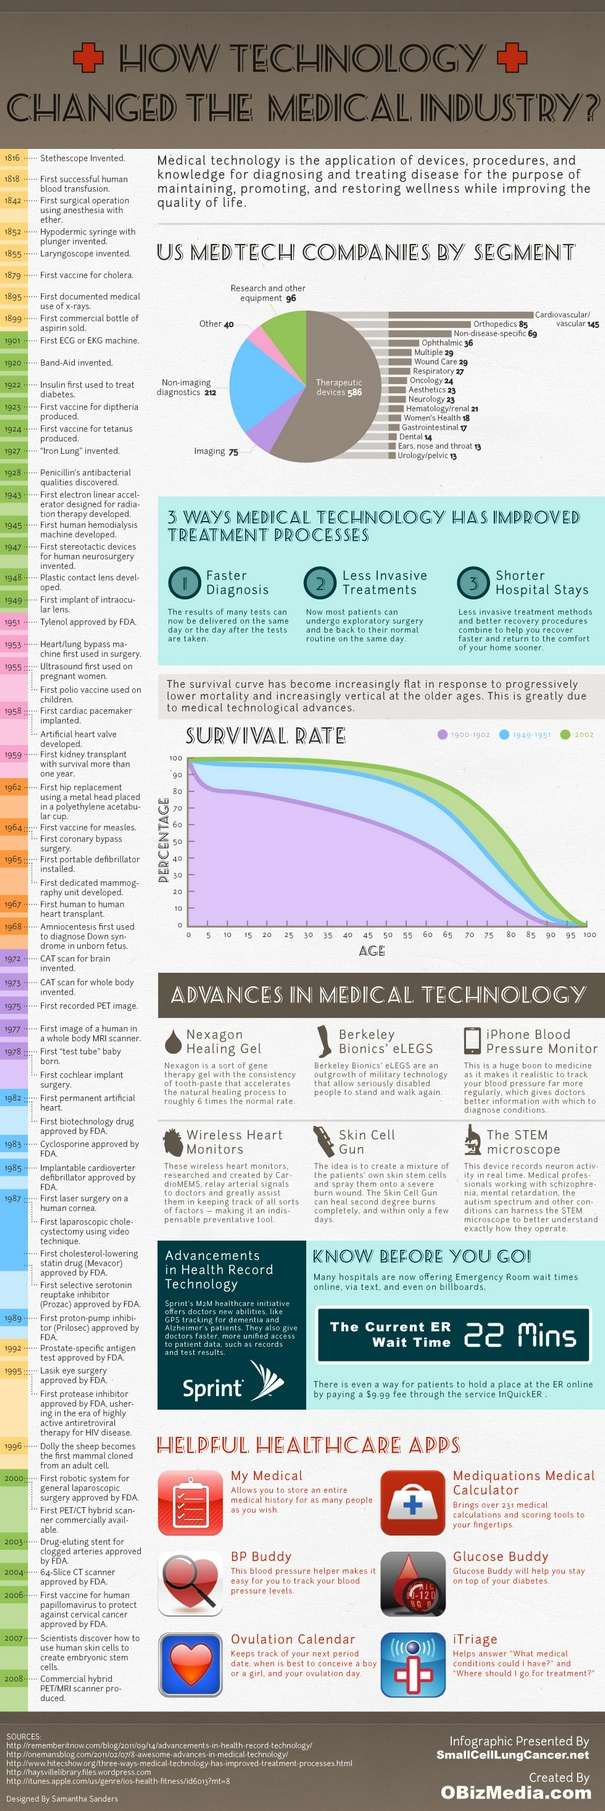 How Technology Changed the Medical Industry Infographic